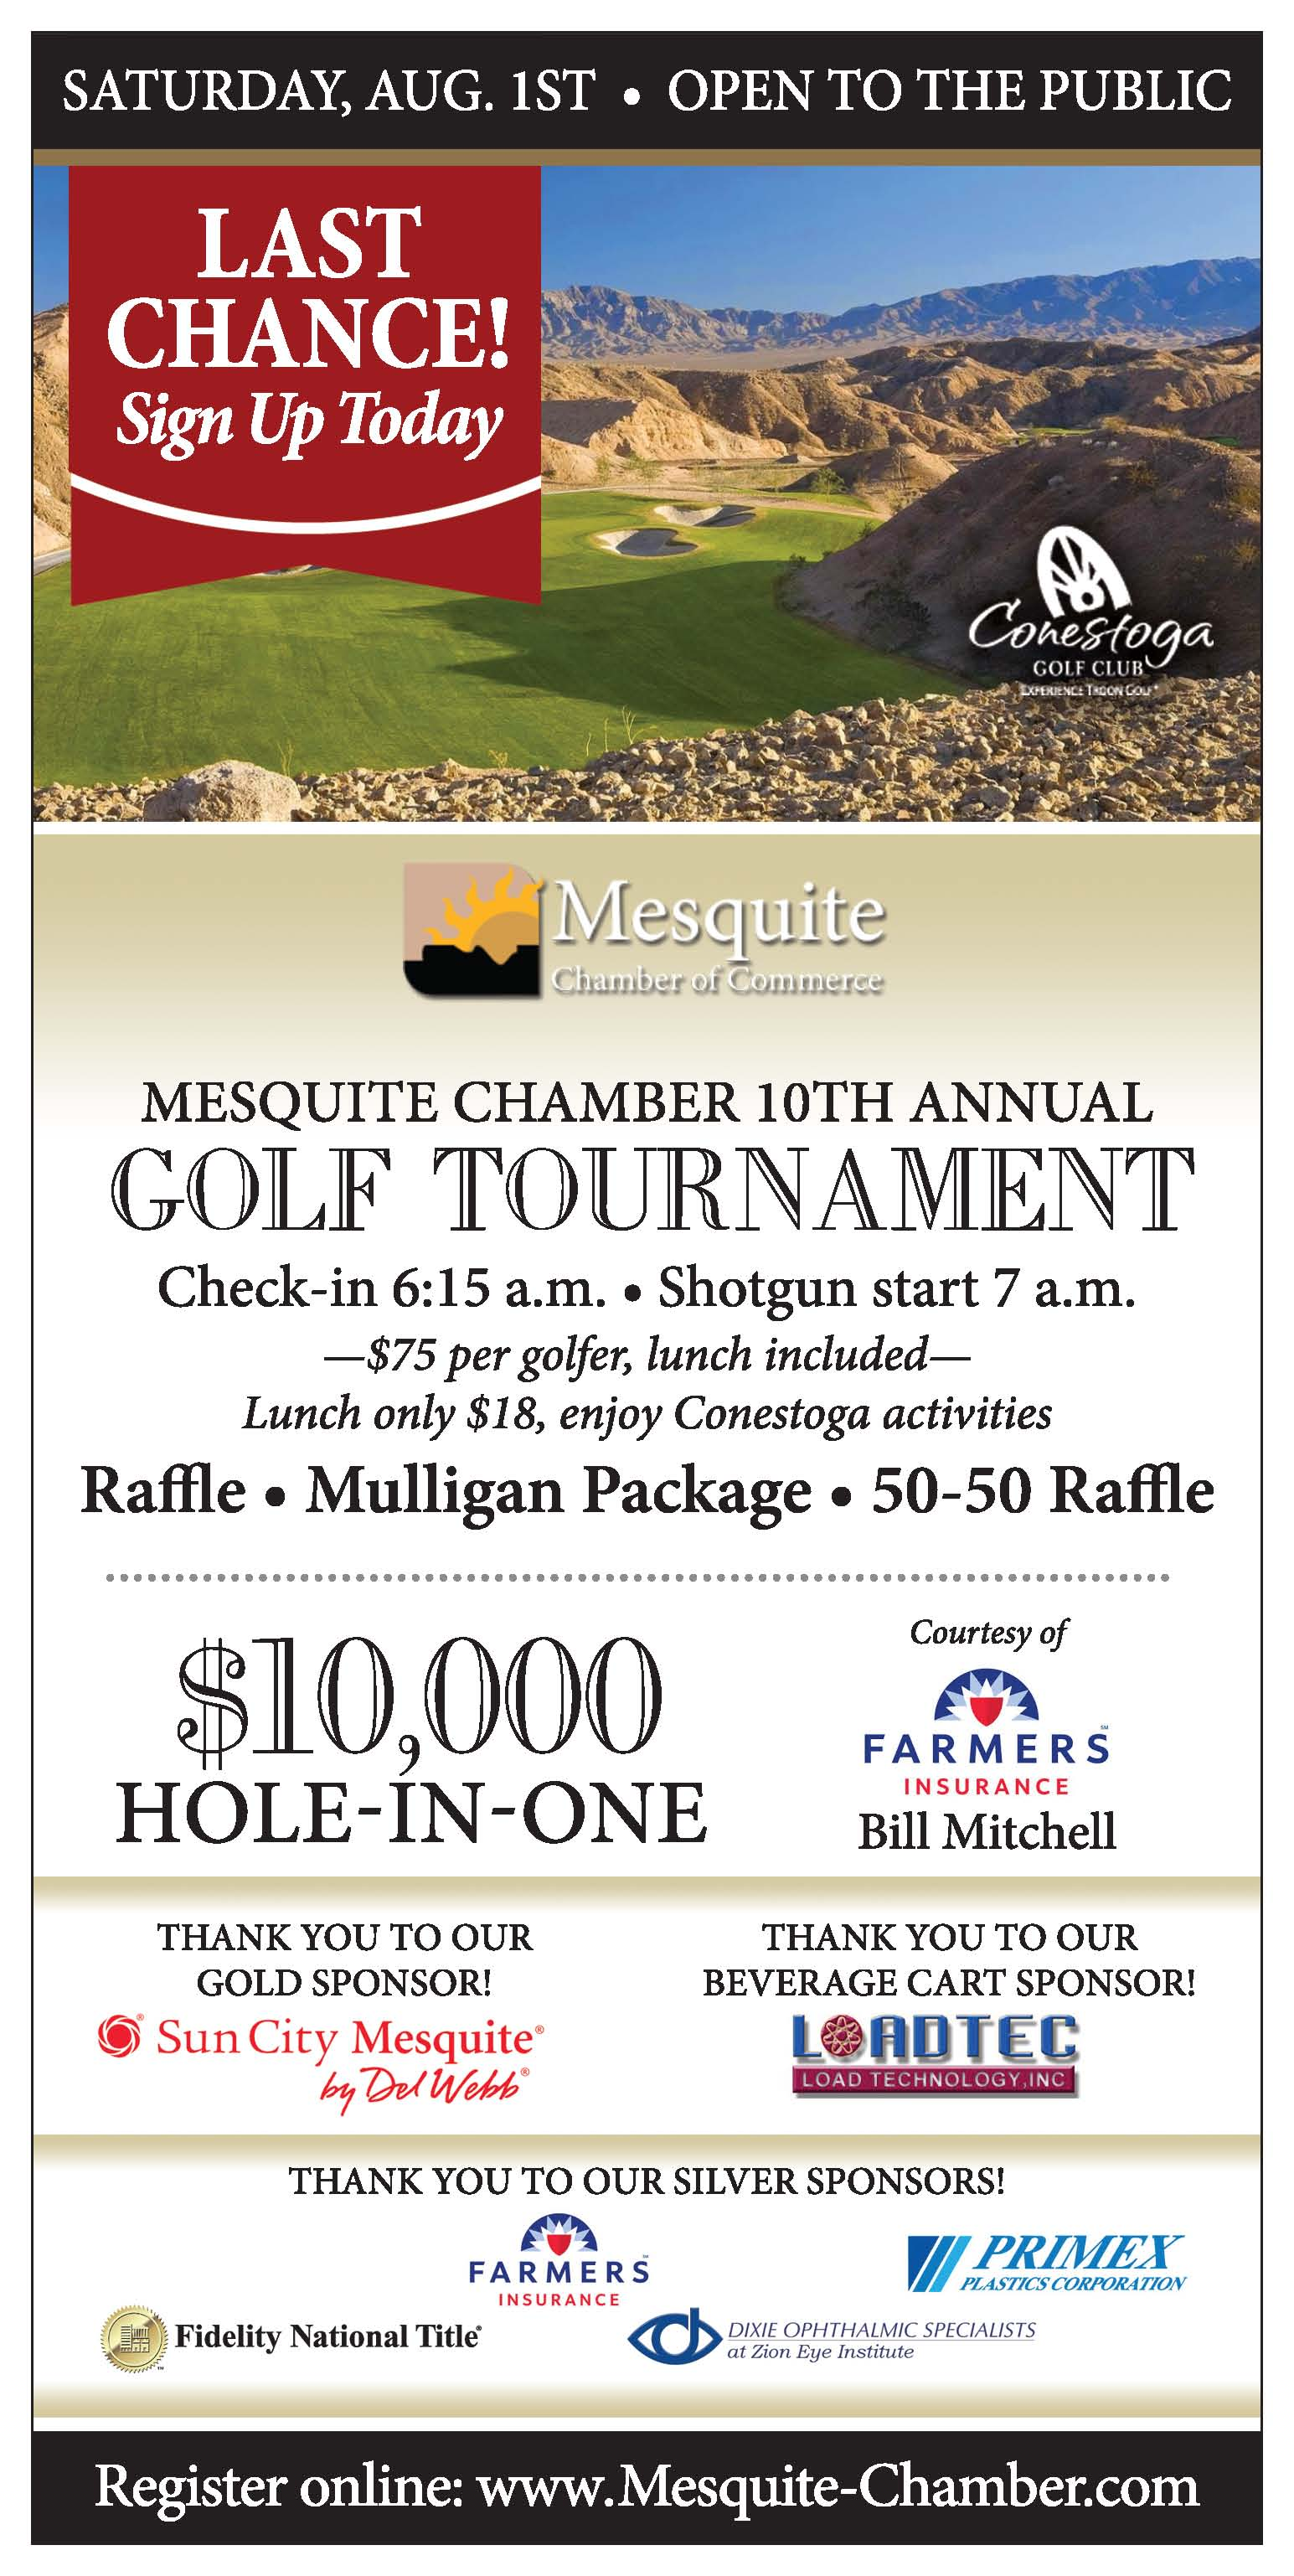 Major Sponsors Partner with Mesquite Chamber Of Commerce